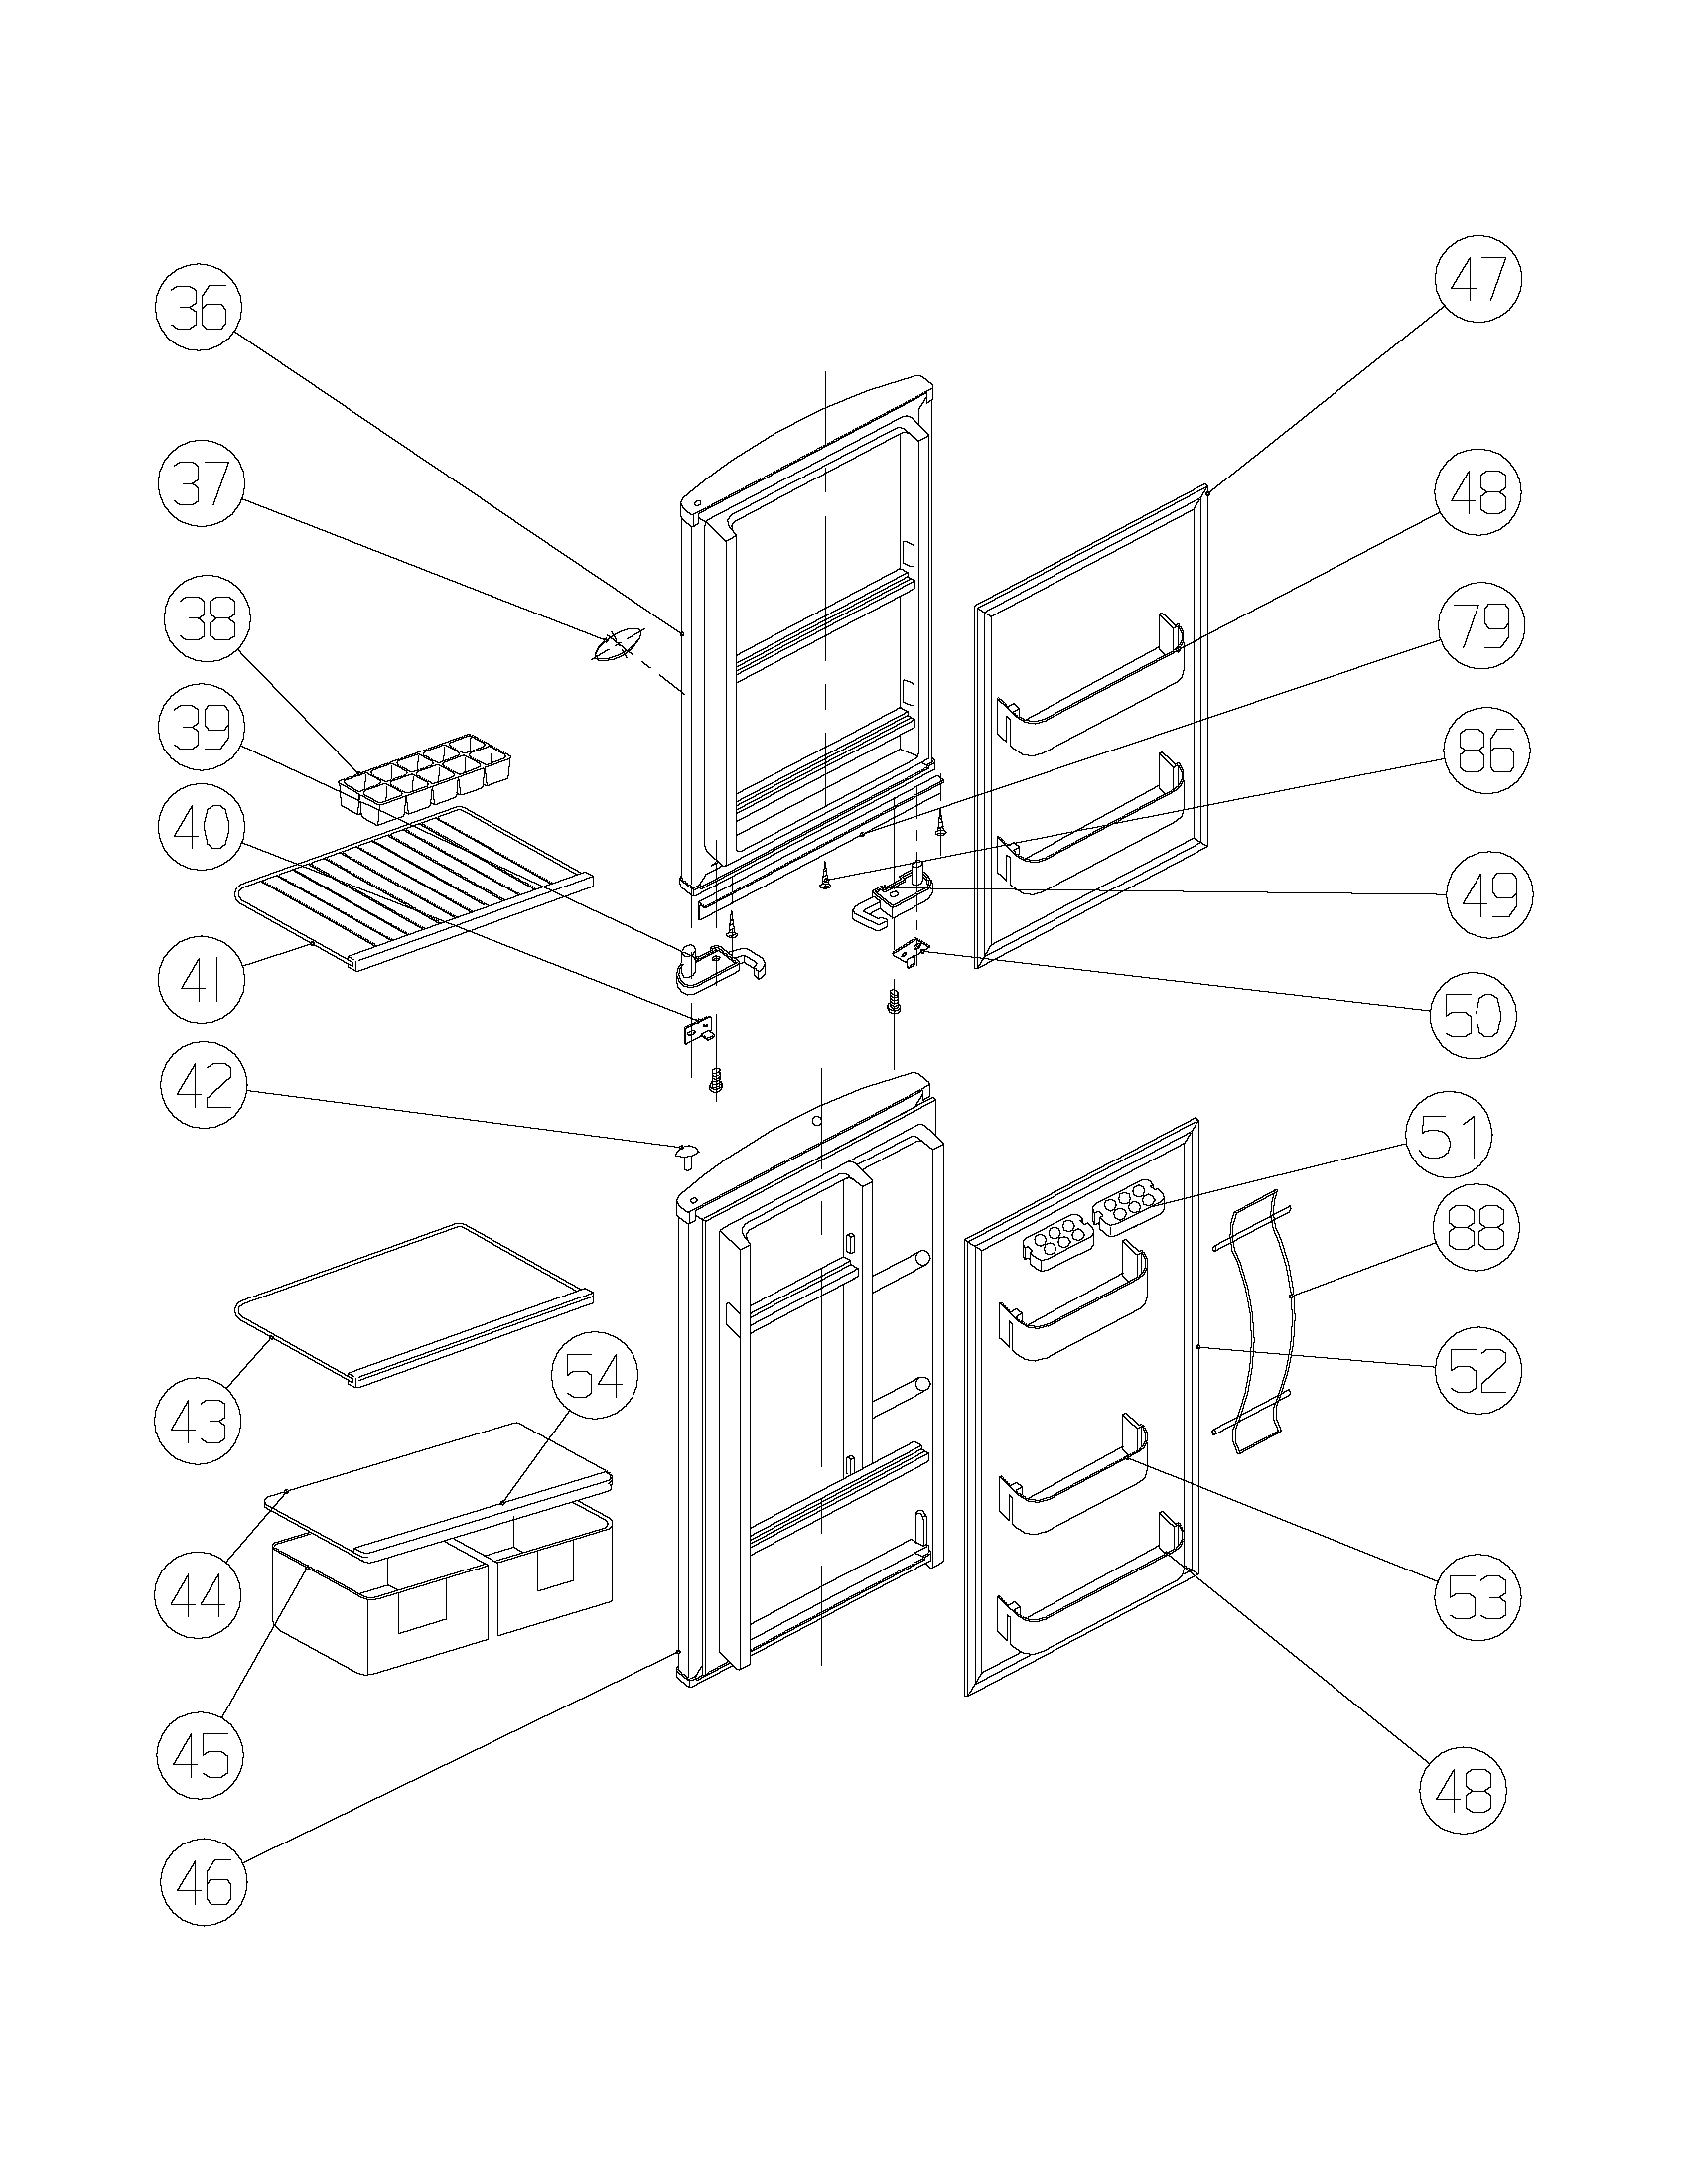 Frigidaire FRT124FWK0 door diagram